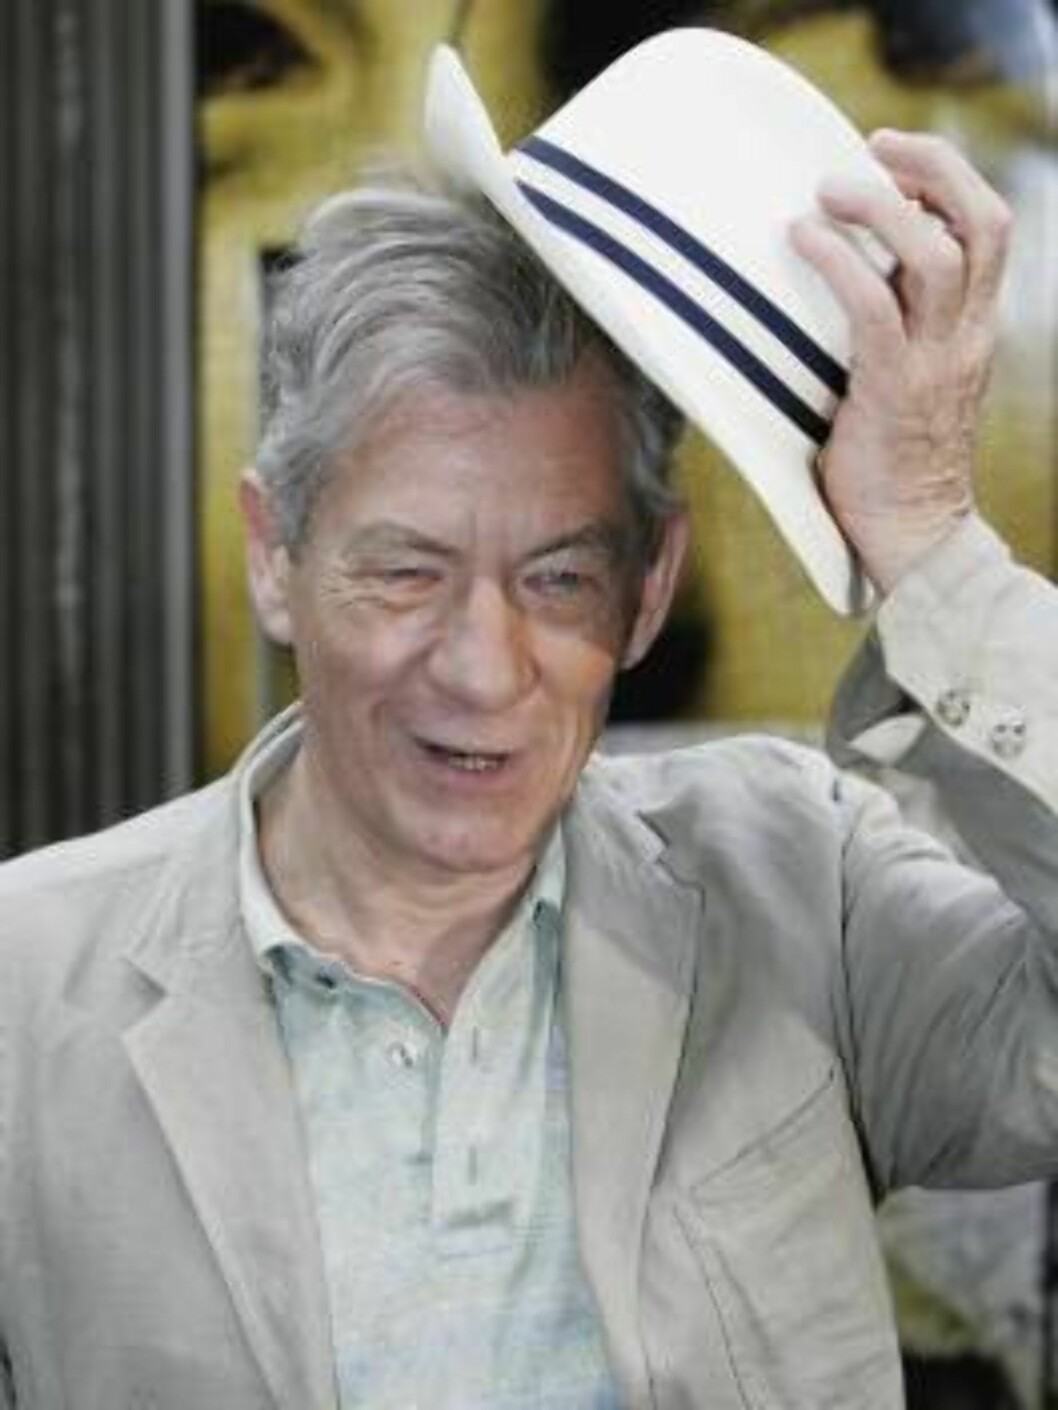 <strong>LONDON - MAY 16:</strong>  Actor Sir Ian McKellen doffs his hat during a photocall for new film The Da Vinci Code at Eurostar's Waterloo International Terminal on May 16, 2006 in London, England. At the photocall a new Eurostar Train was named 'The Da Vinci Code' Foto: All Over Press